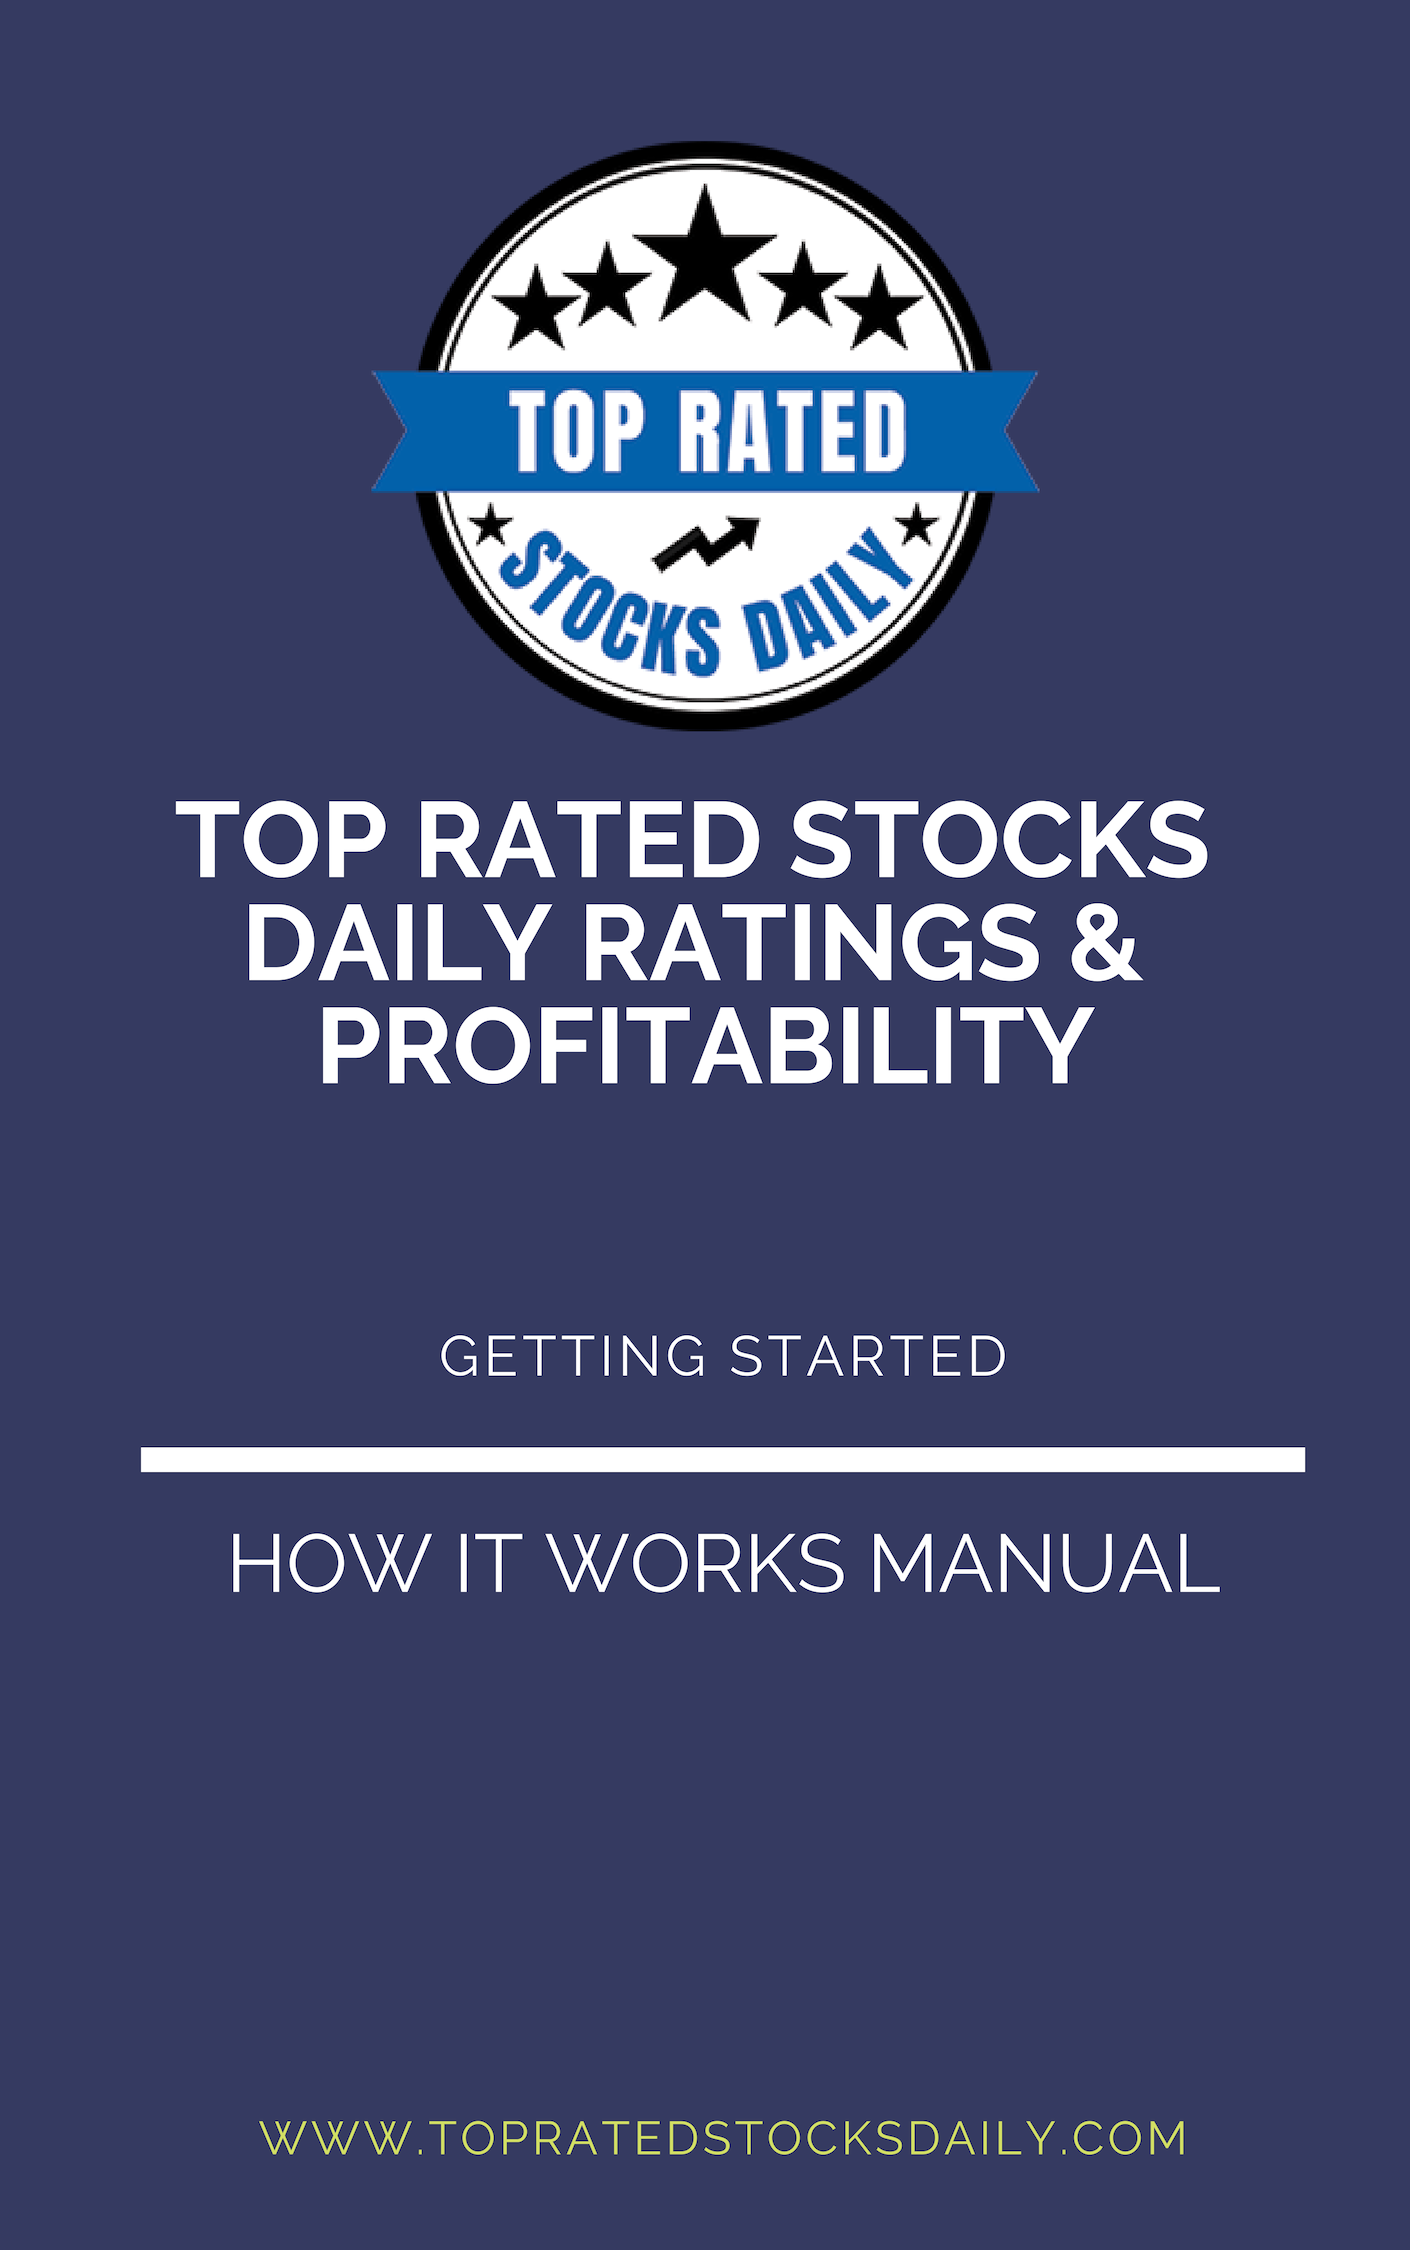 TOP RATED STOCKS DAIL